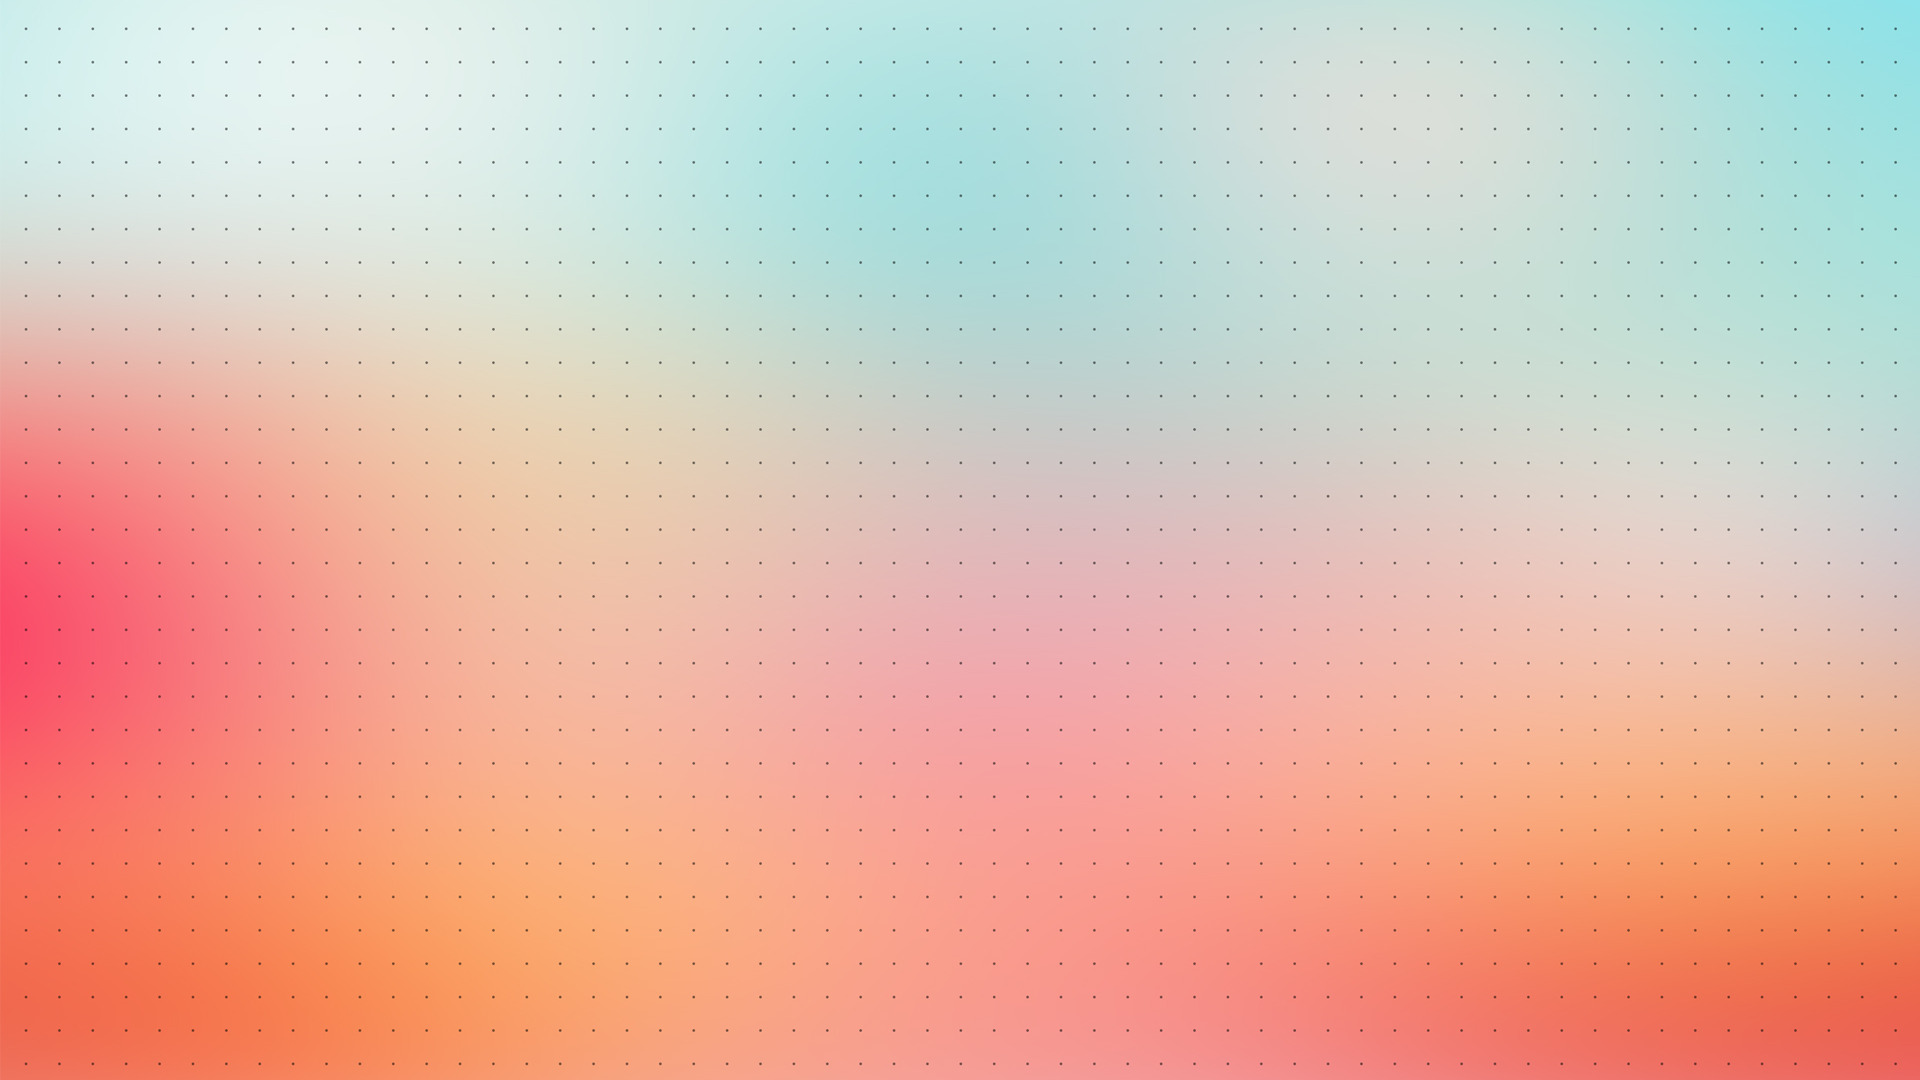 oooh-nice-grid-of-dots-searching-for-good-gradients-as-a-book-cover-background-for-Divya-Victor-s-wallpaper-wp3808901